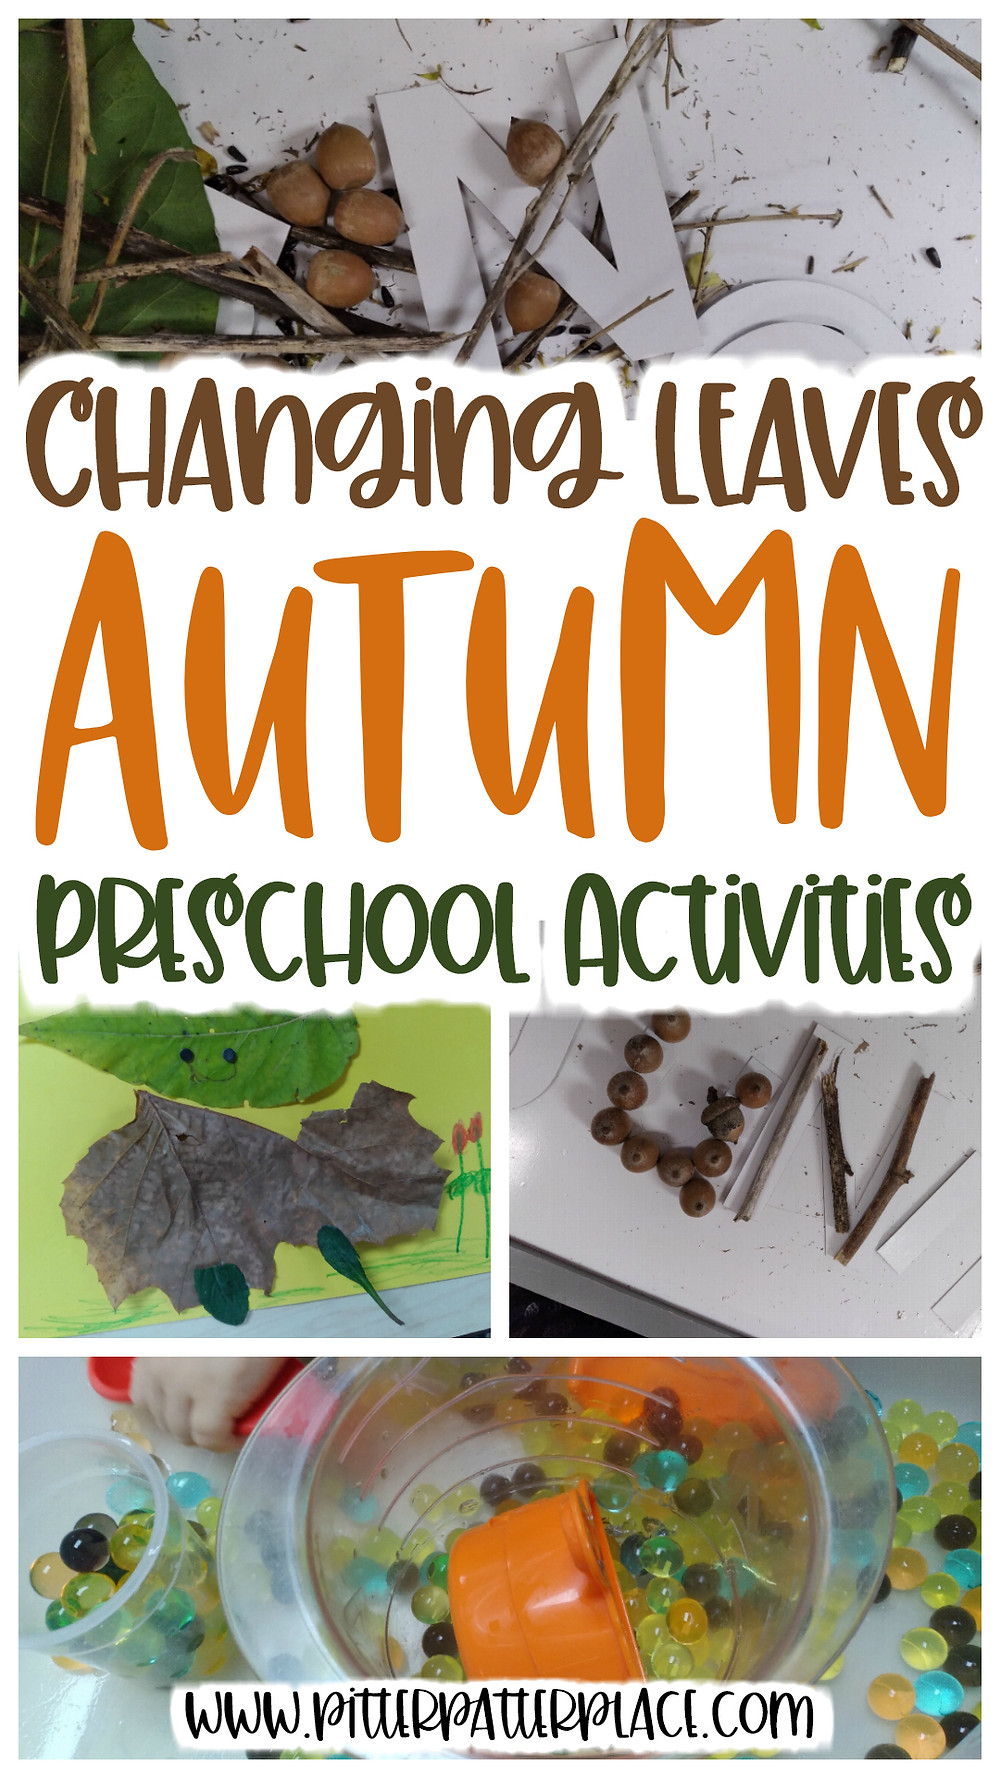 collage of leaf activities with text: Changing Leaves Autumn Preschool Activities